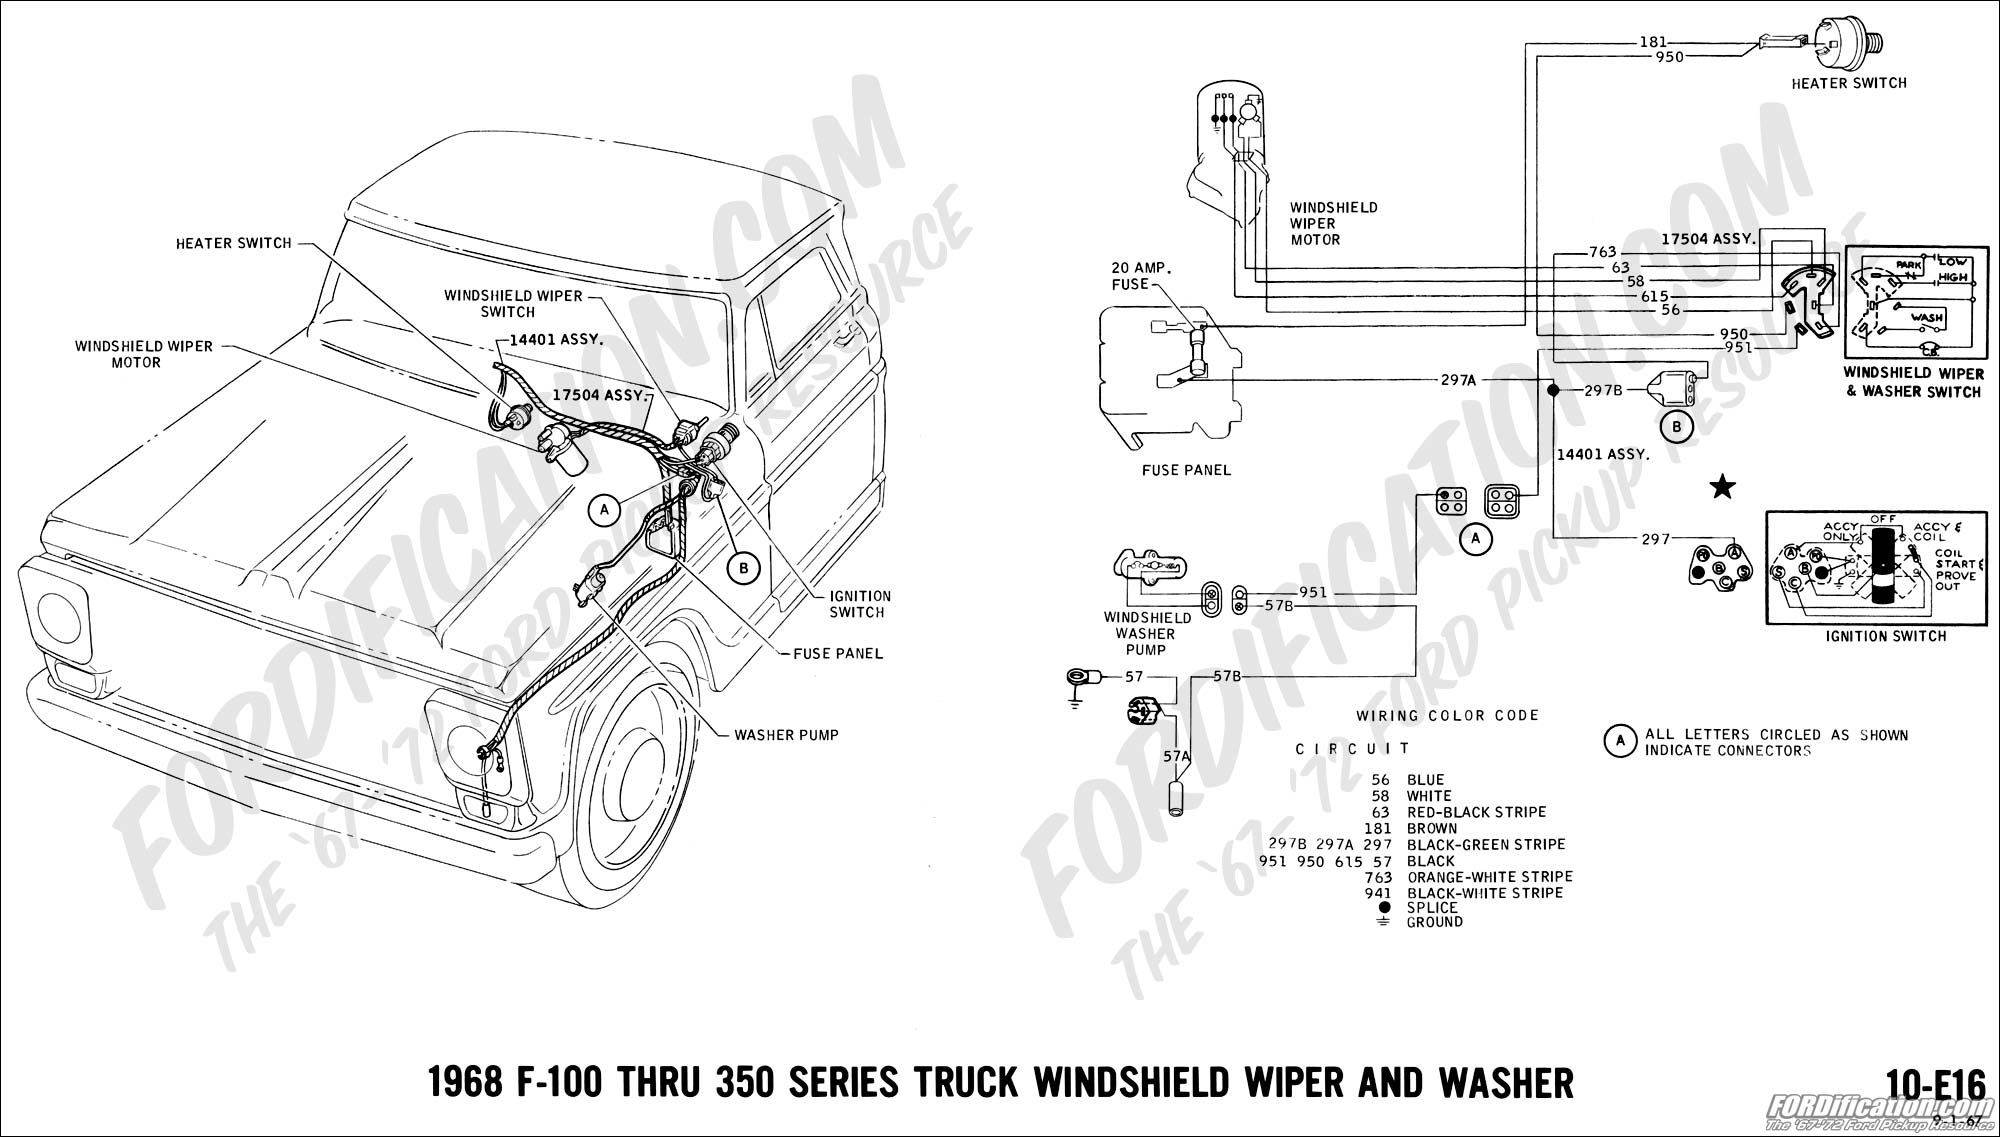 68 18 1967 chevy impala wiring diagram 1974 chevy c10 wiring diagram Universal Wiper Motor Wiring Diagram at fashall.co